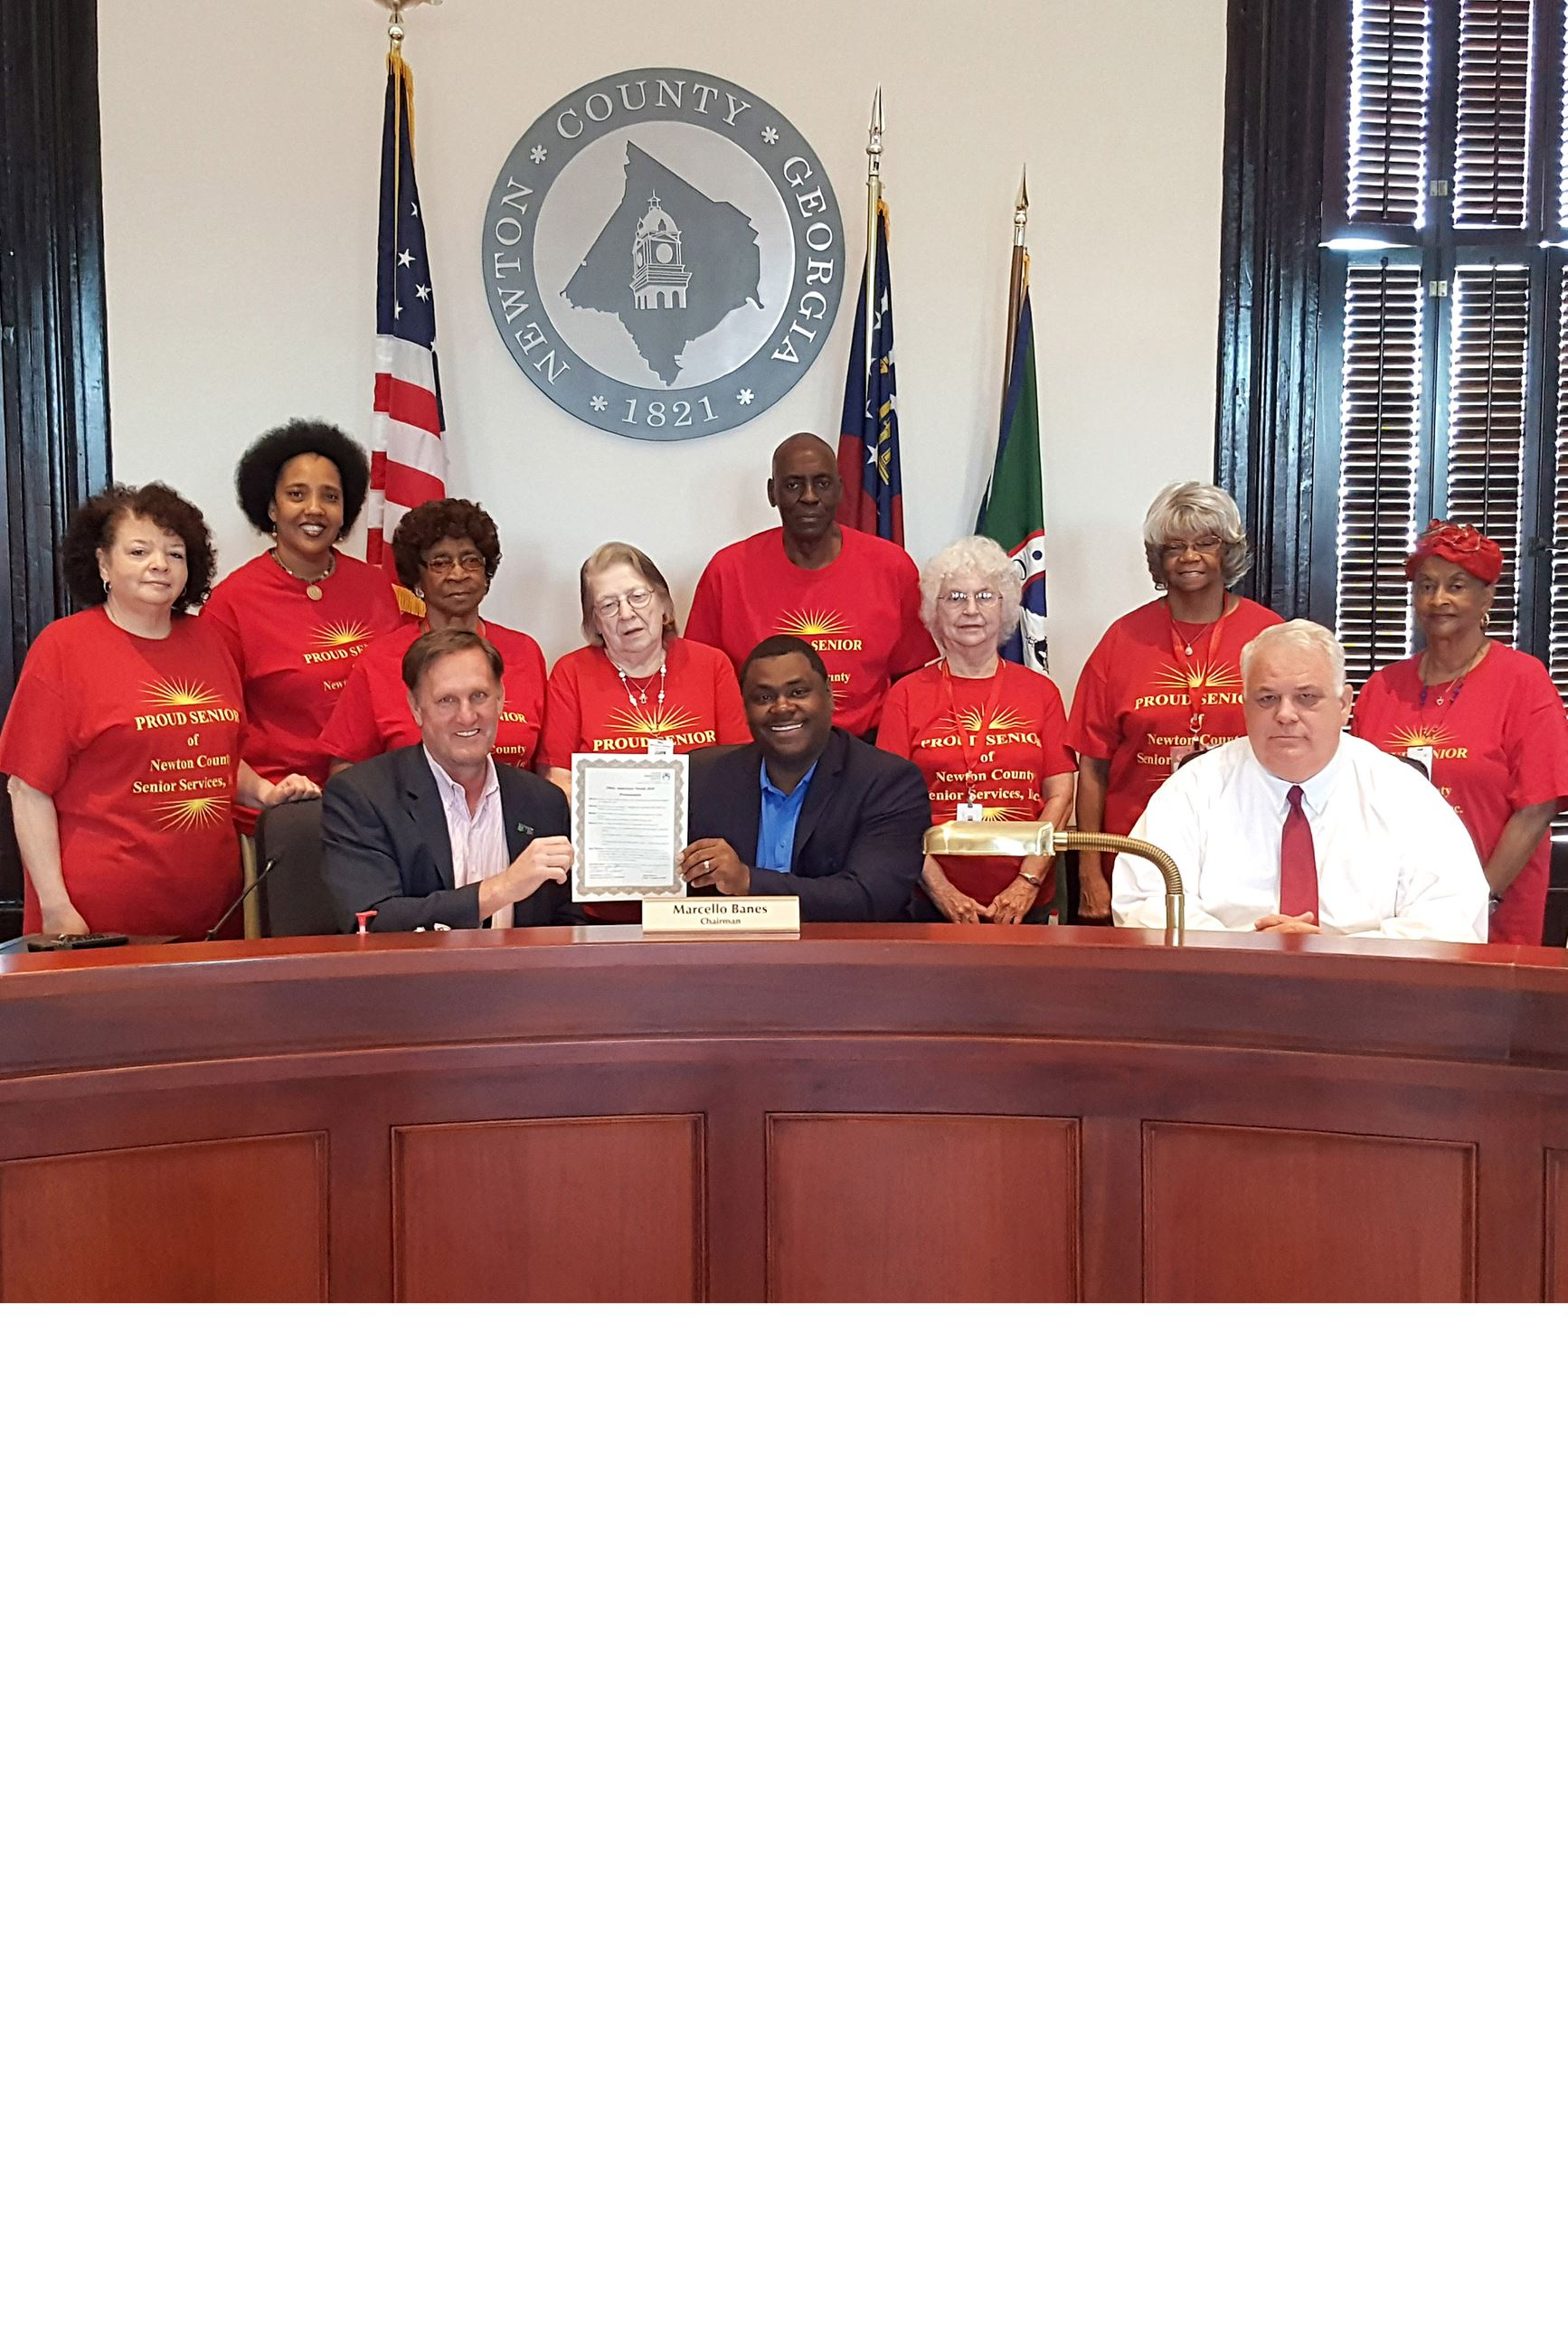 Image of 2019 Older Americans Month Proclamation highlight